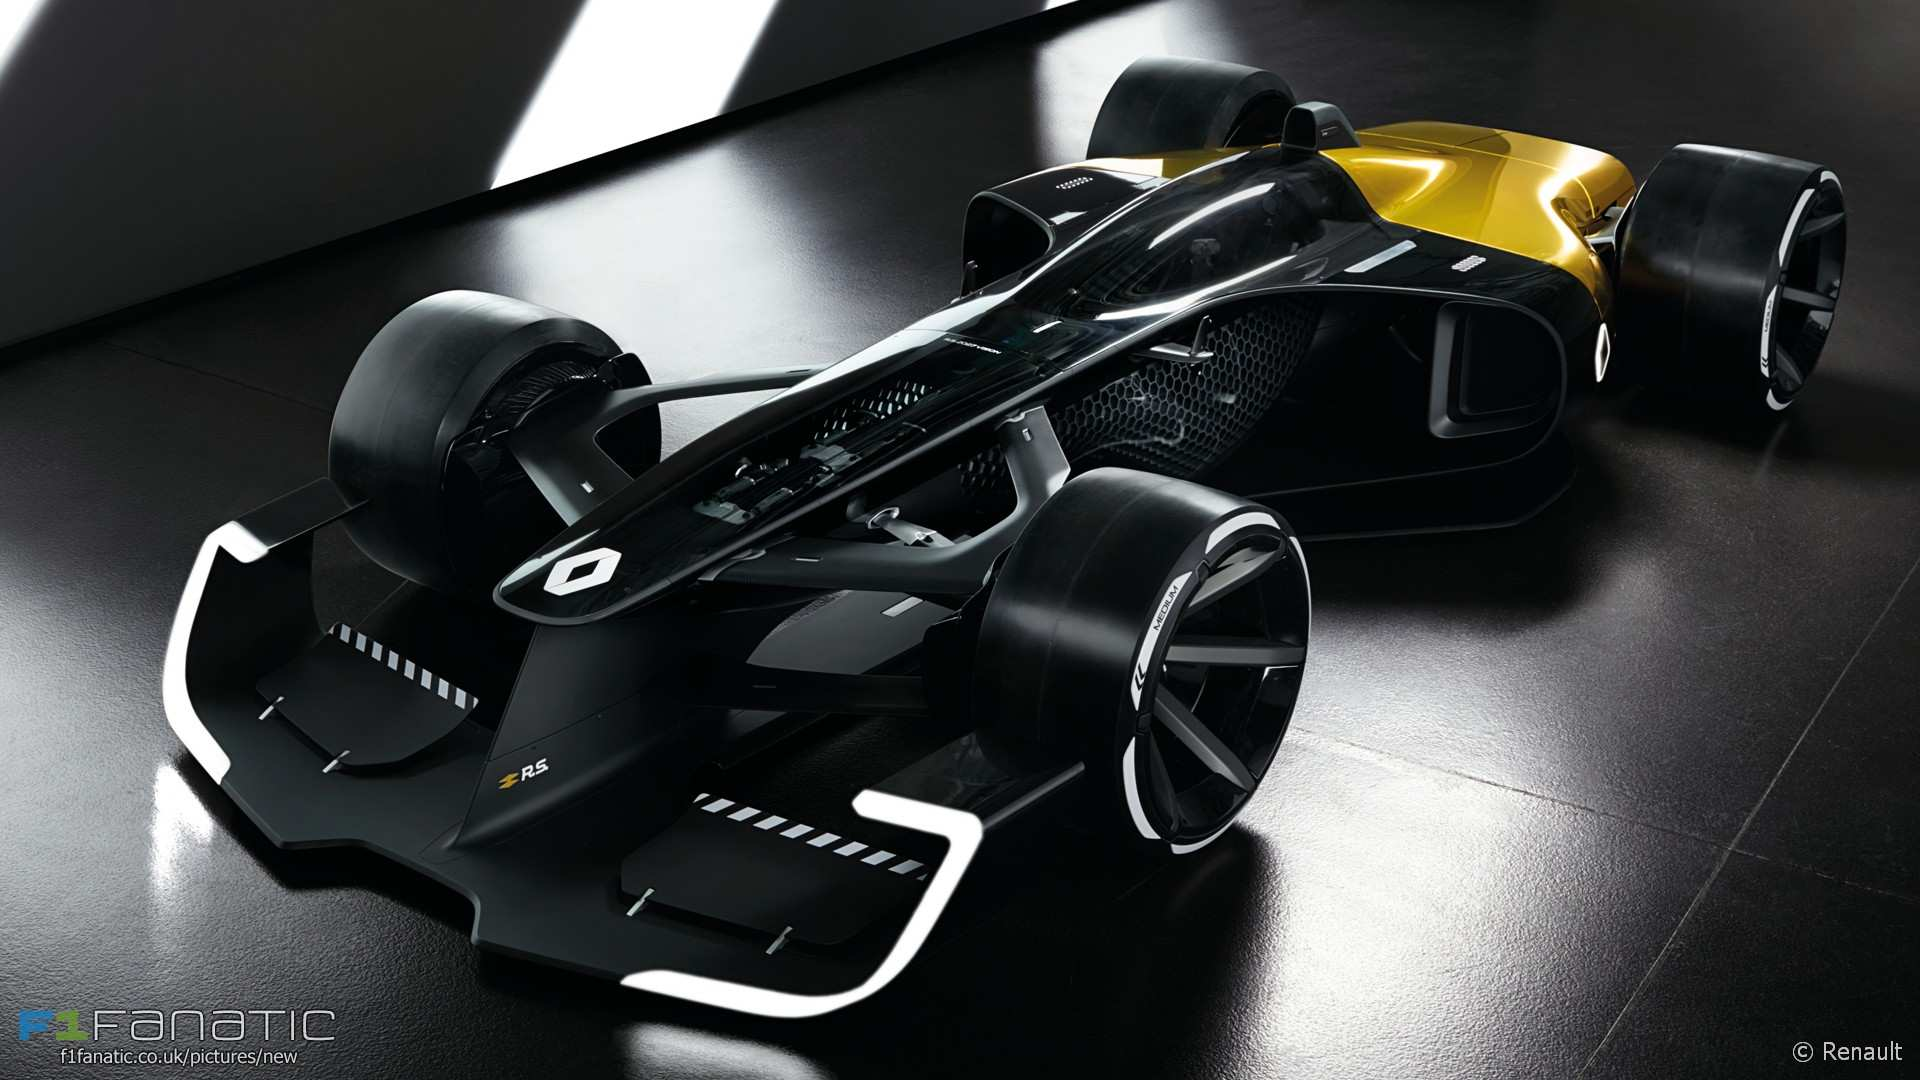 98 The Renault 2020 F1 Redesign And Concept